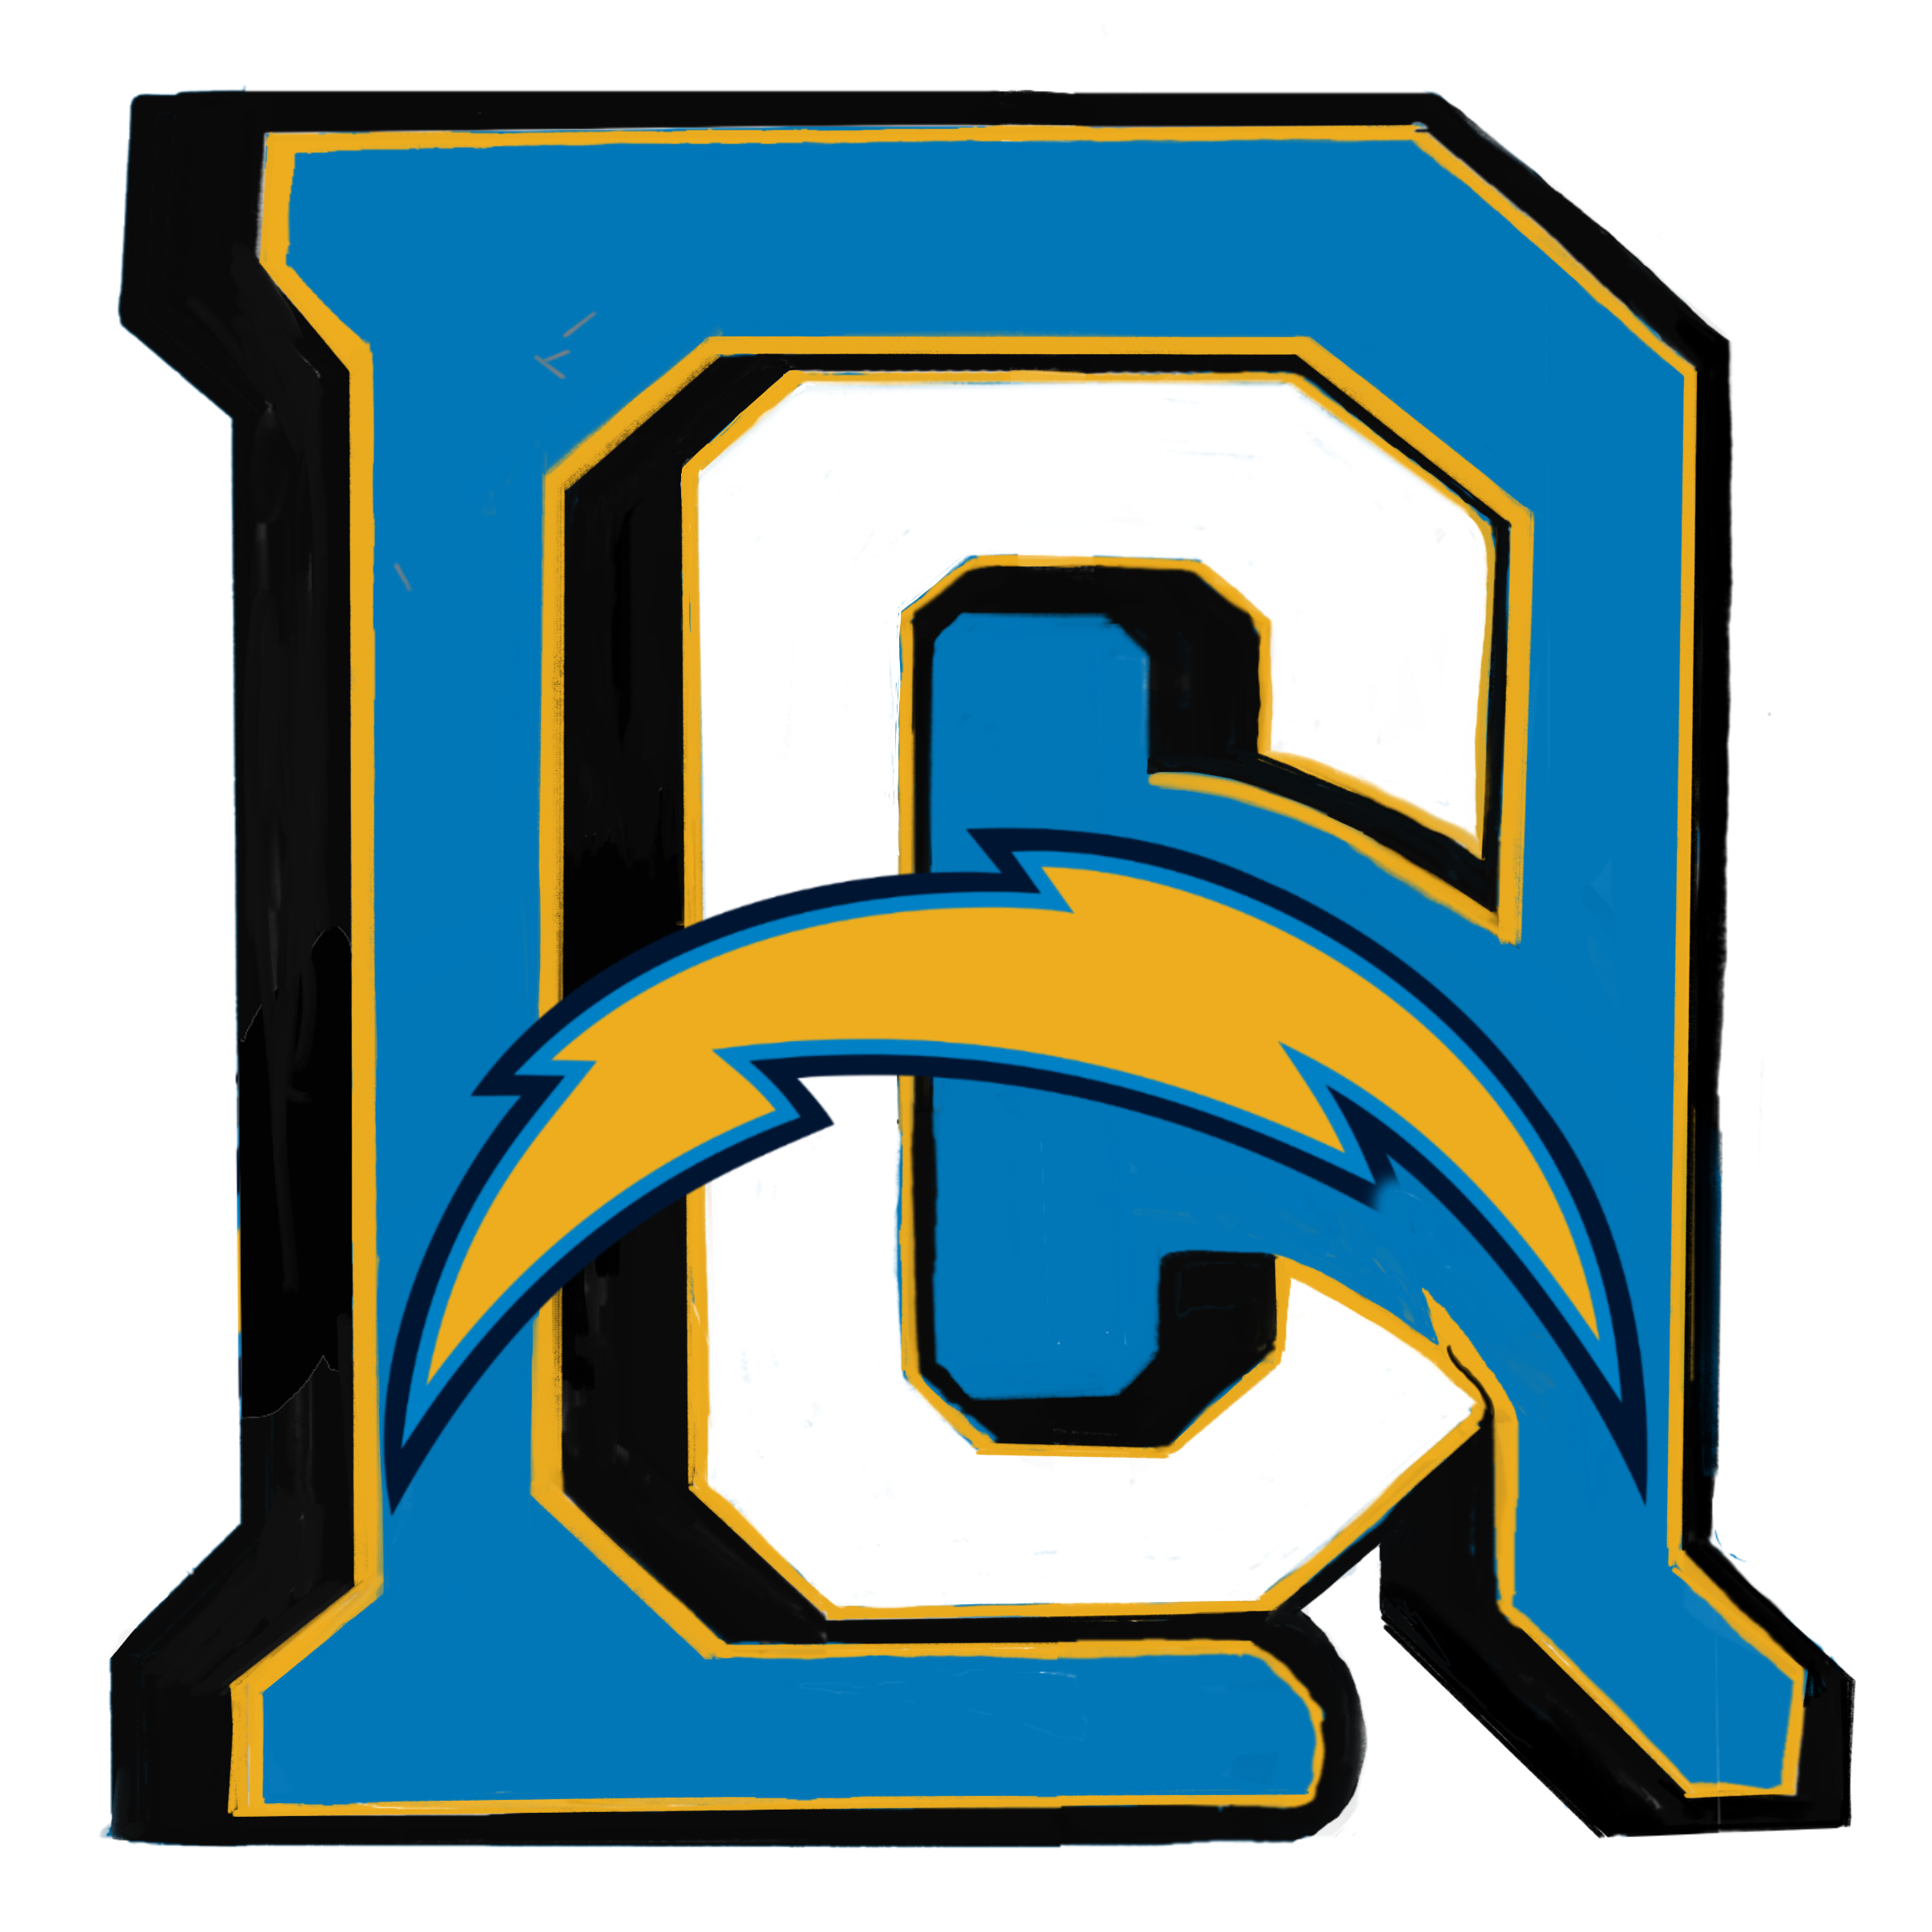 Los Angeles Chargers Logo Los Angeles Chargers Logo Logos Los Angeles Chargers